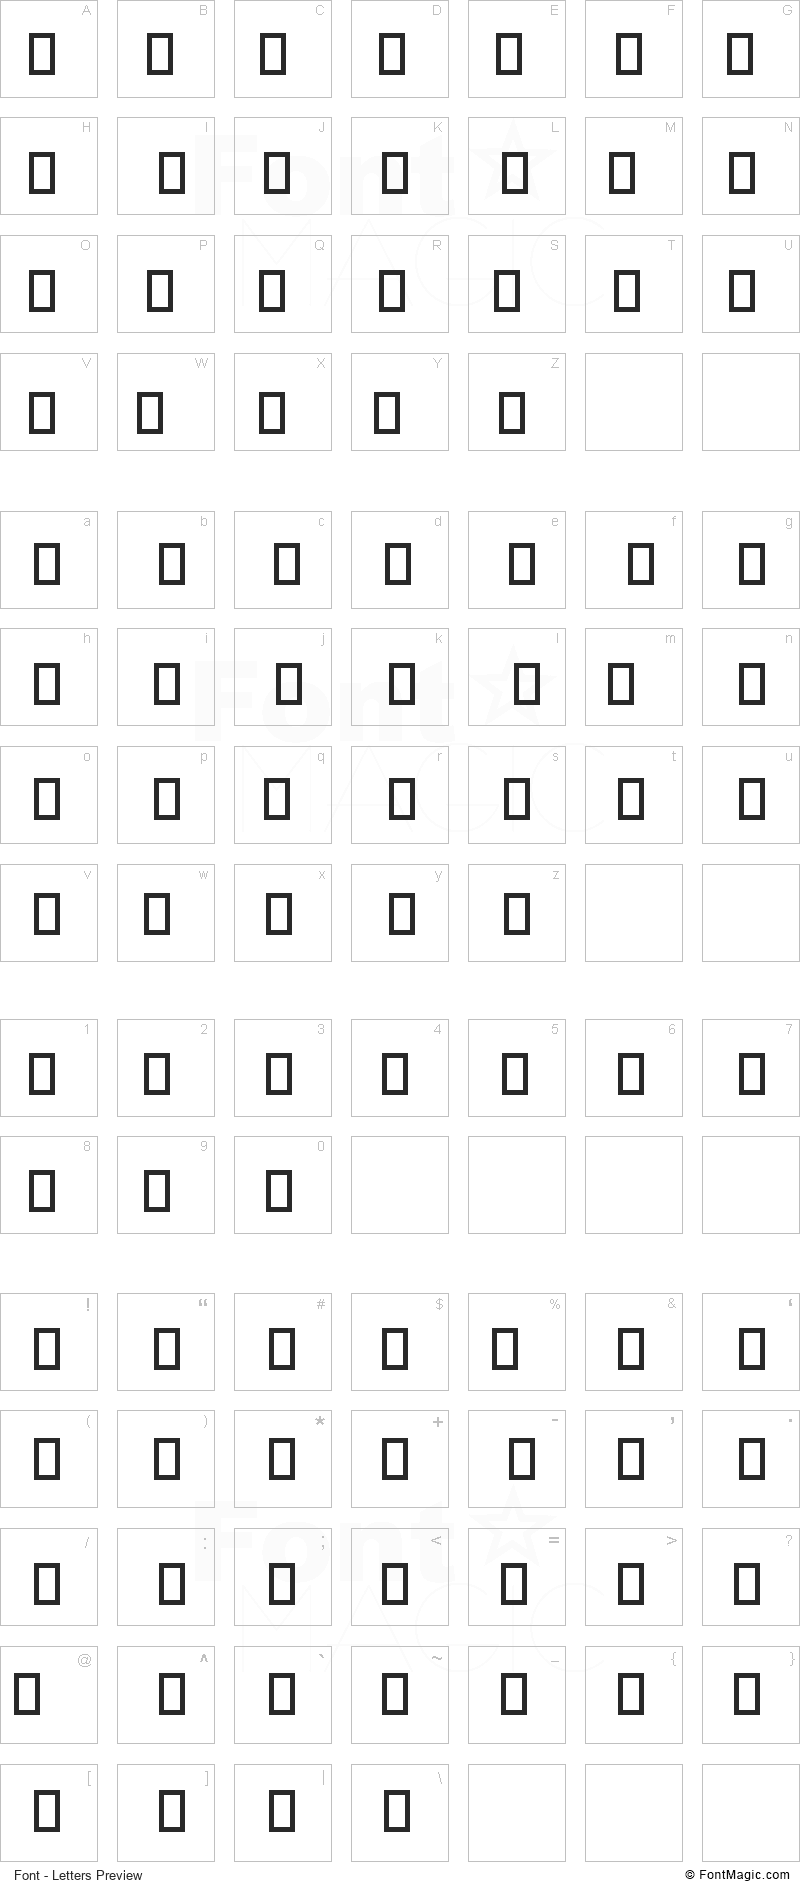 Eyes Font - All Latters Preview Chart